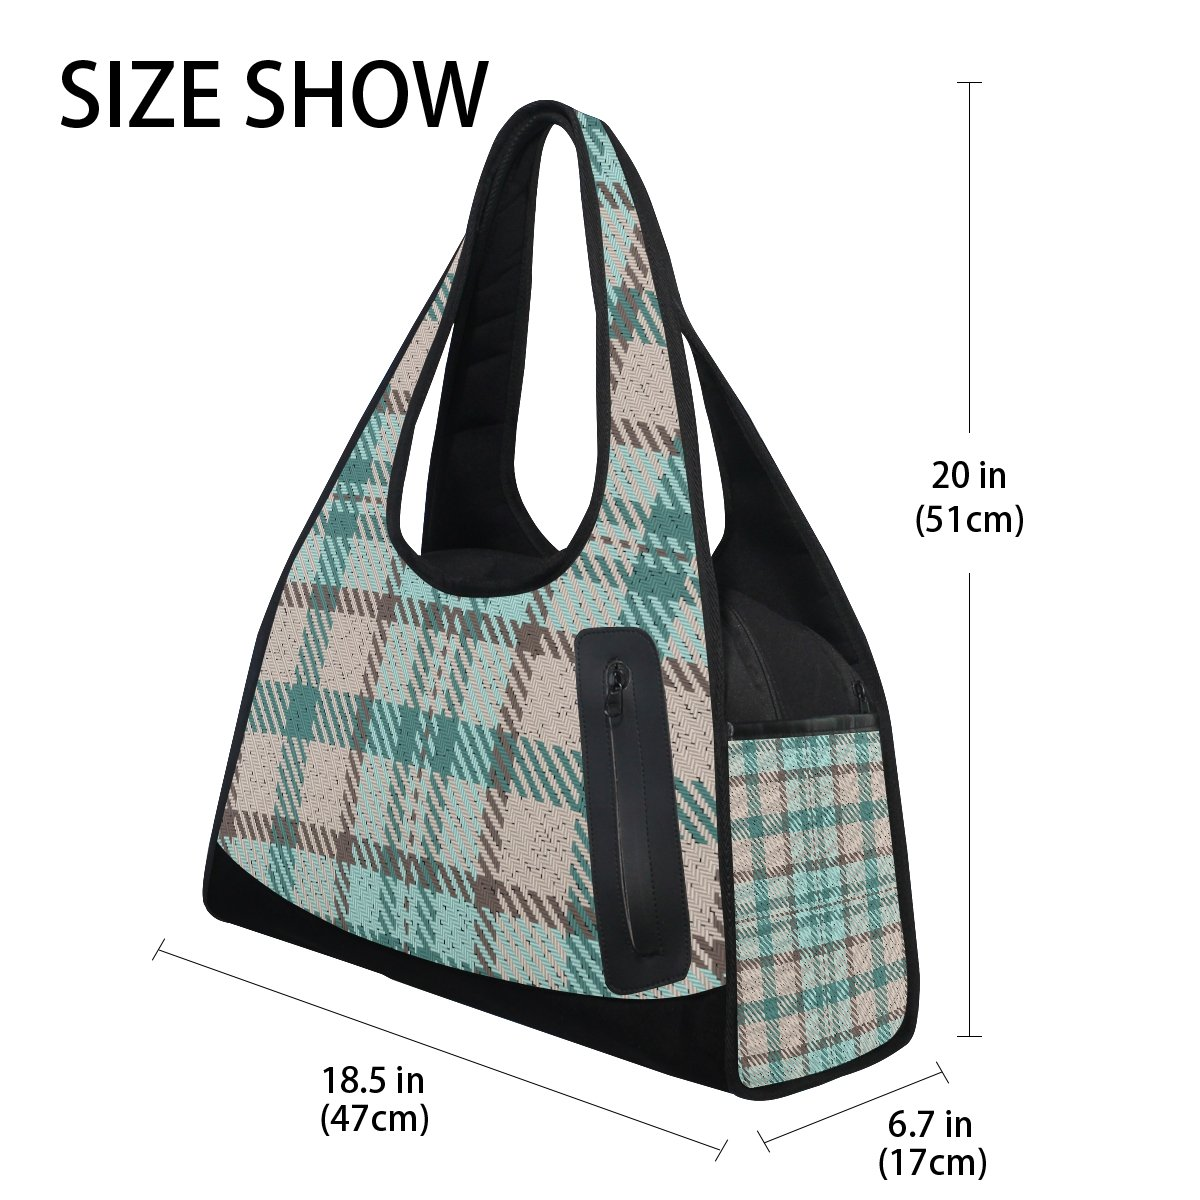 AHOMY Canvas Sports Gym Bag Striped Plaid Checkered Travel Shoulder Bag